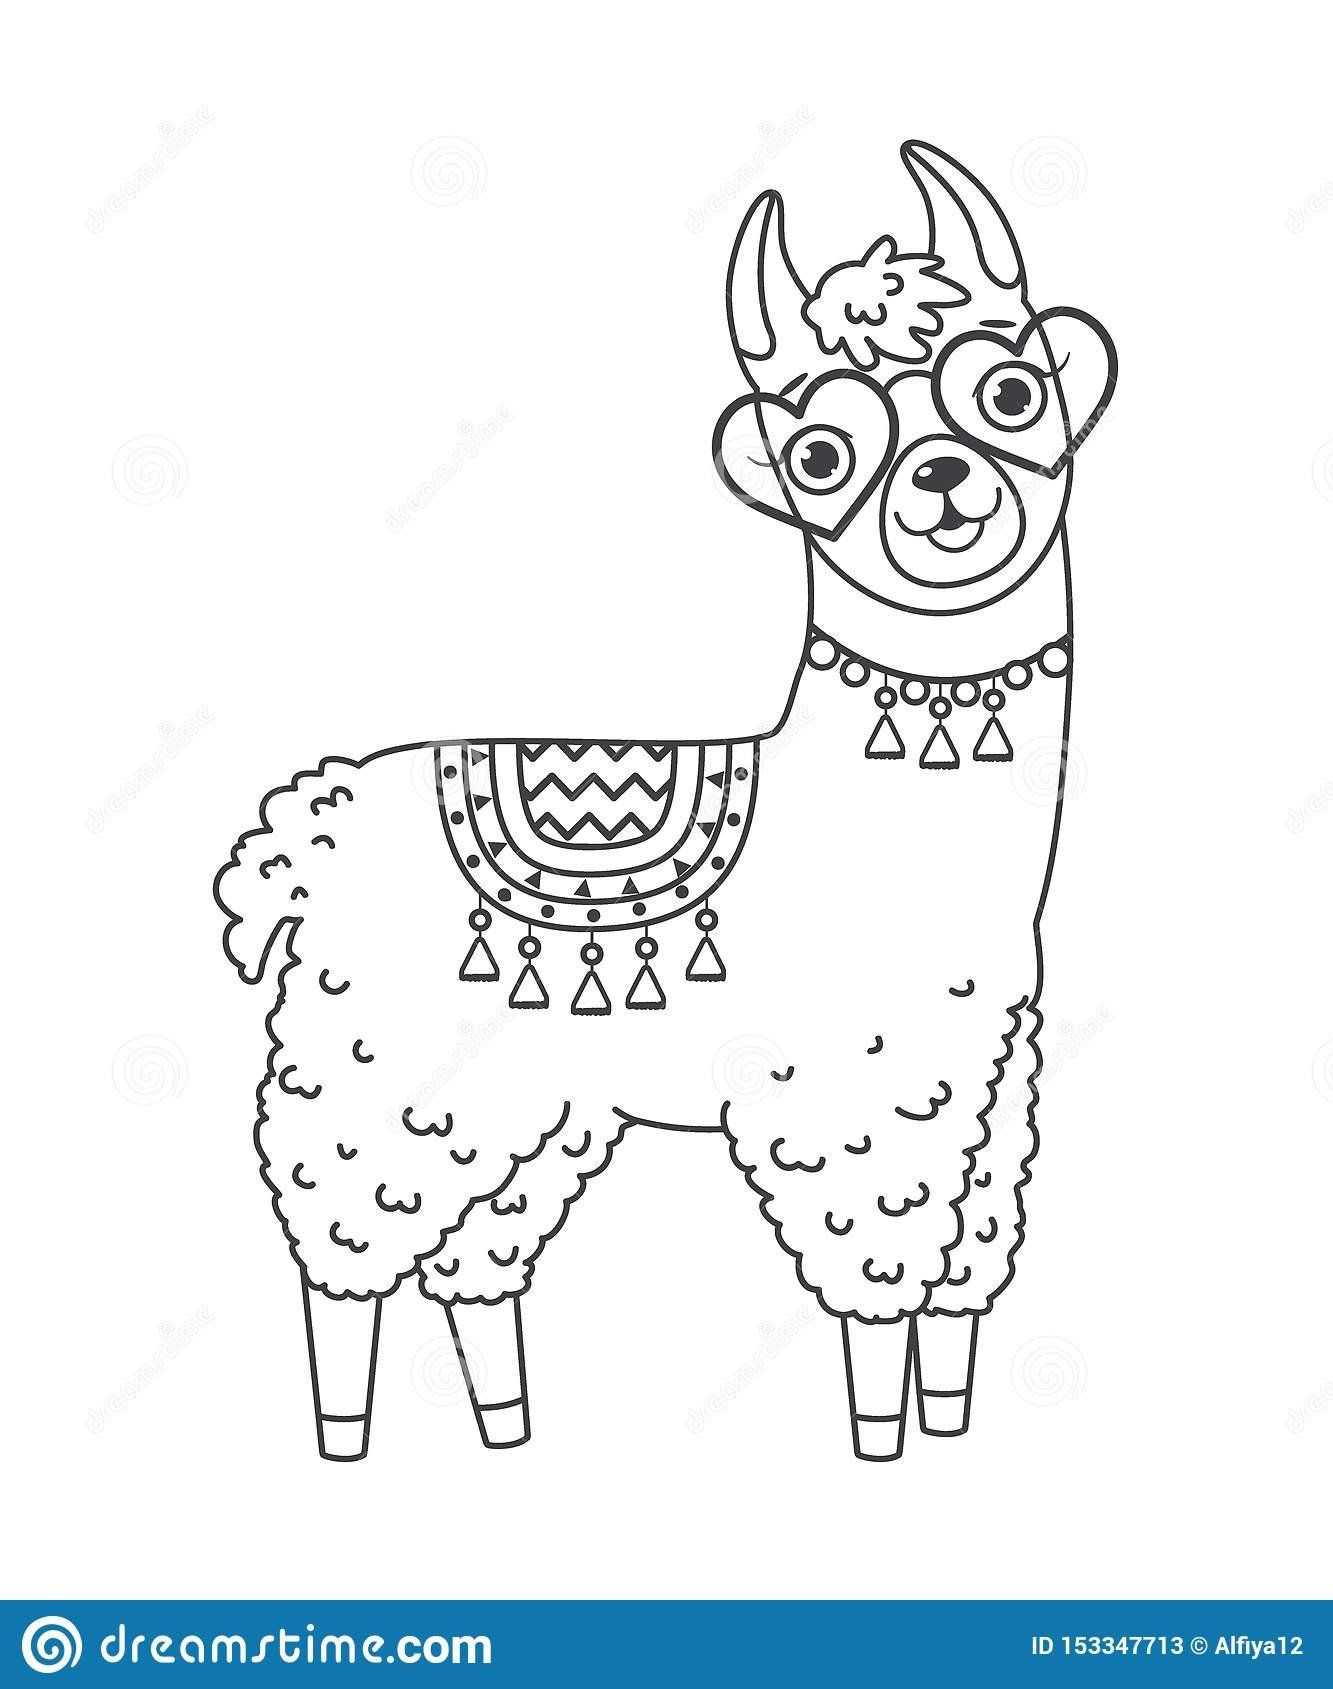 Cute Llama Coloring Pages Top 12 Blue Chip Coloring Pages Llama Best For Kids Flower